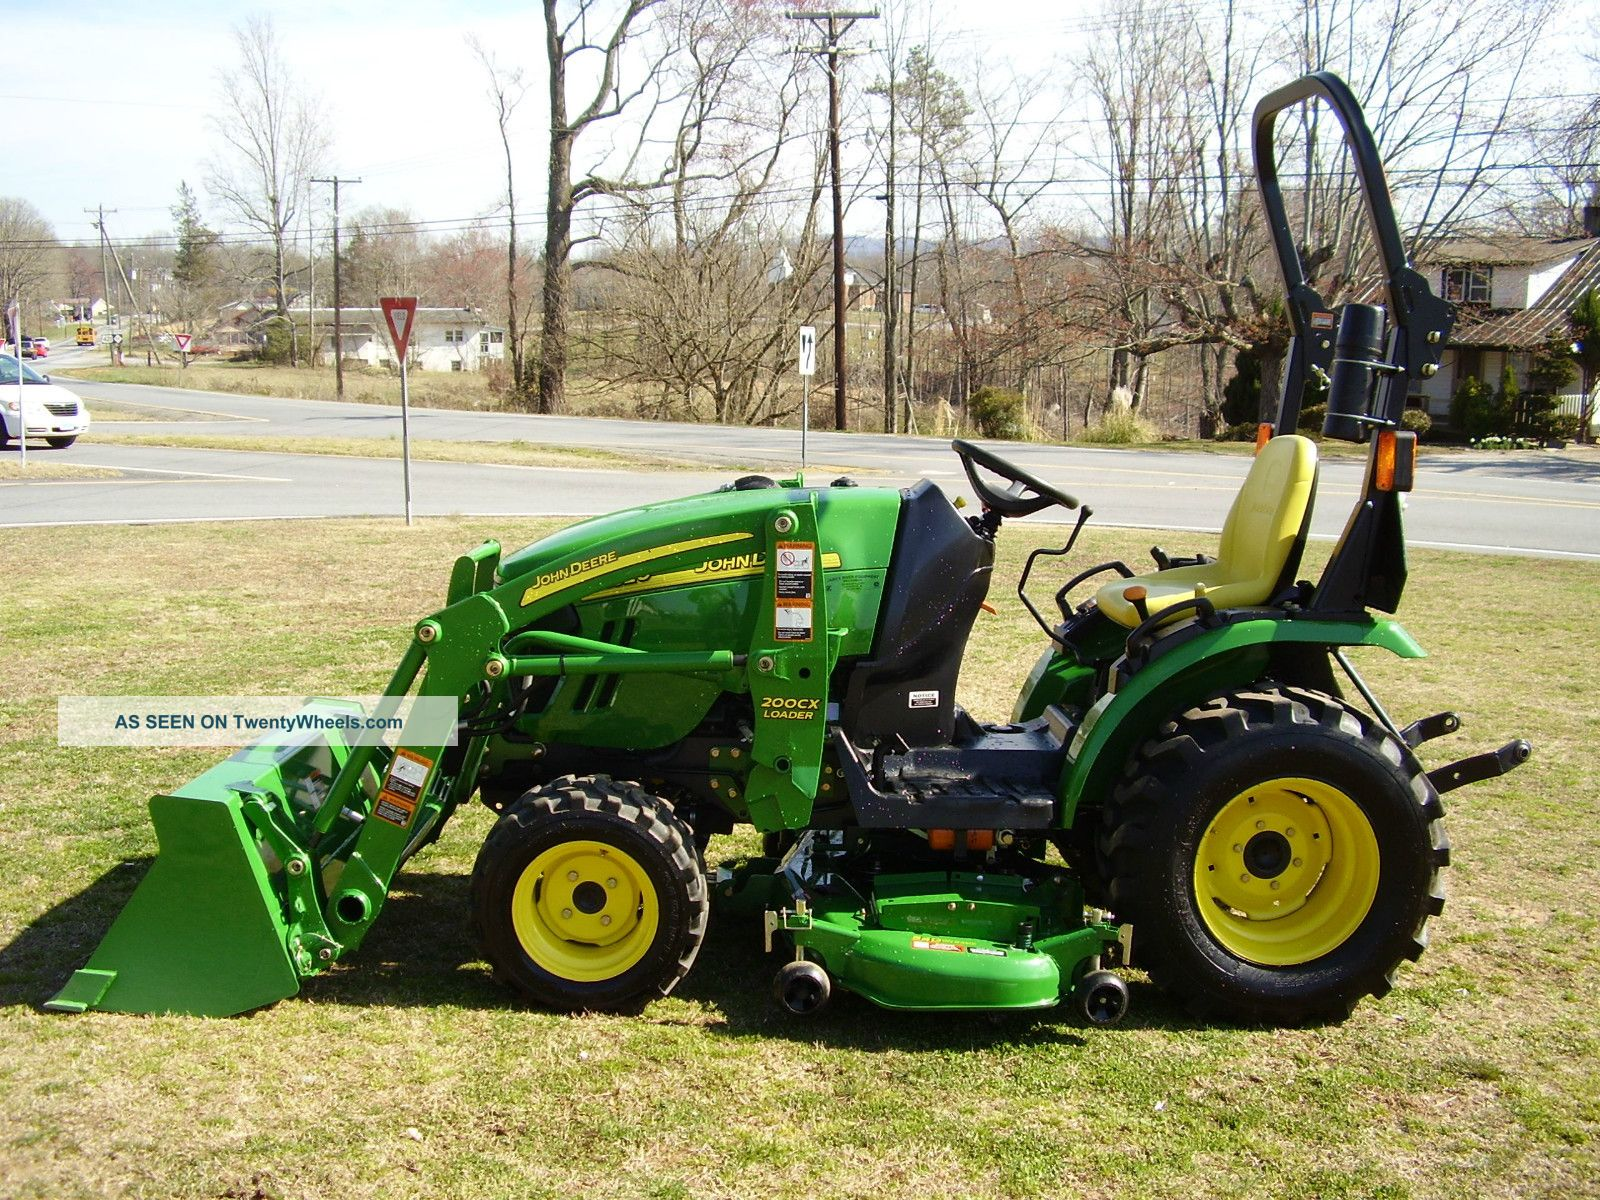 Best 25+ John deere 2320 ideas on Pinterest | DIY birthday ...